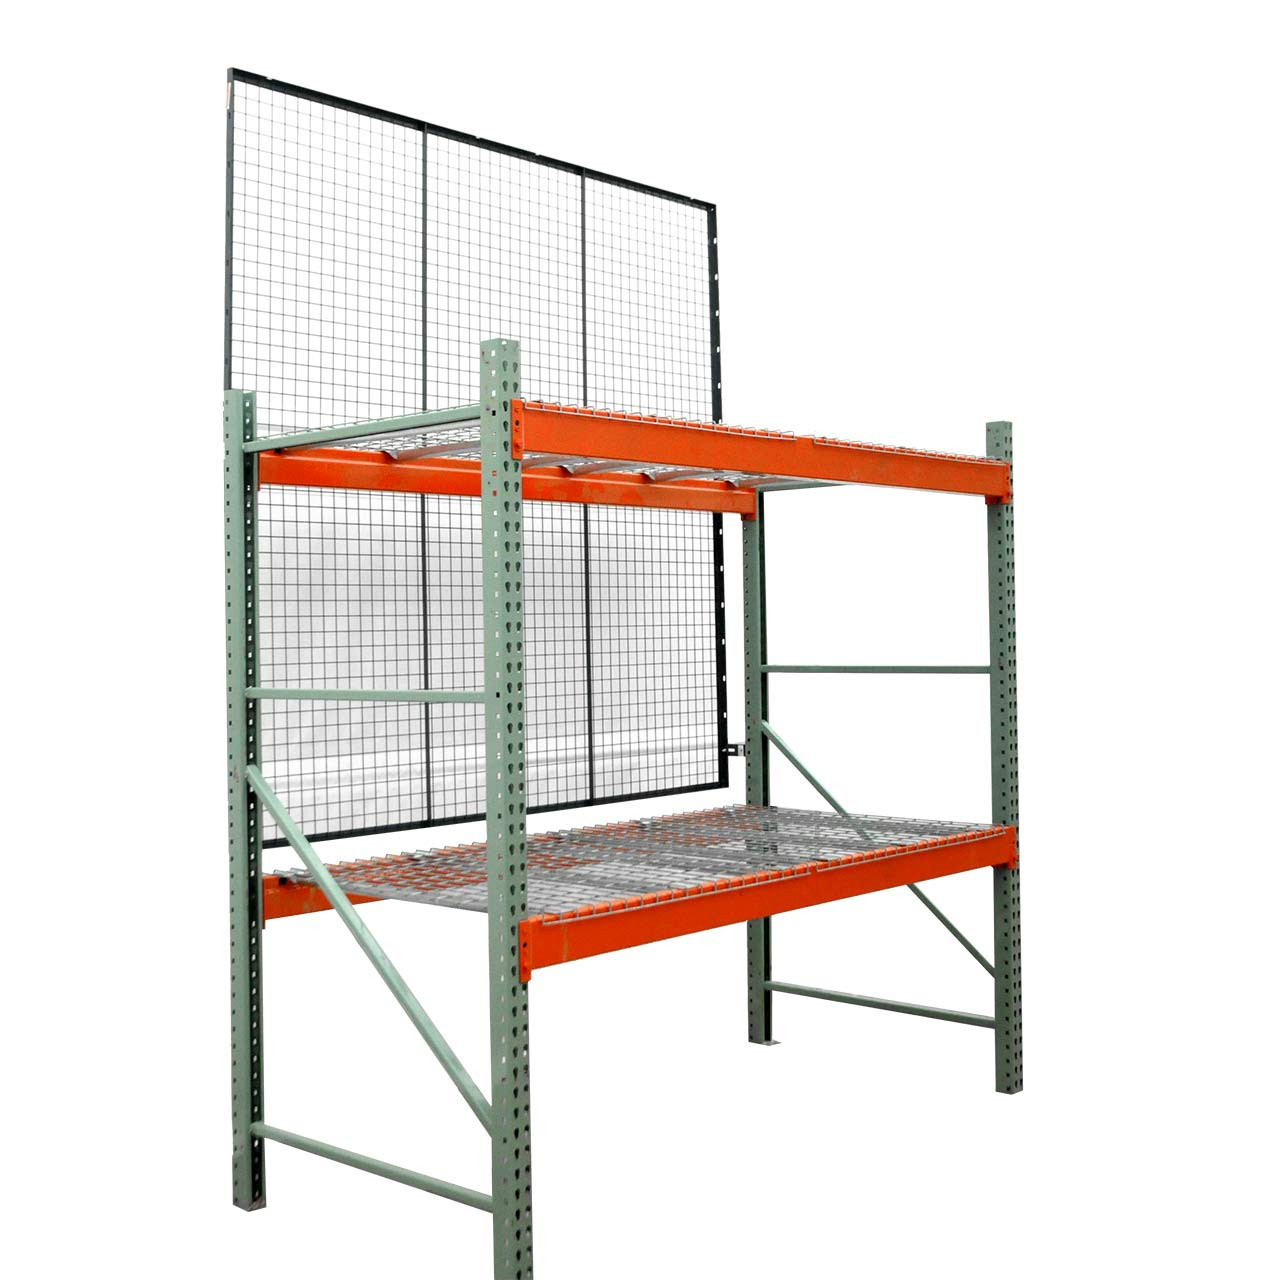 RackBack safety panels keep your products on rack from falling off